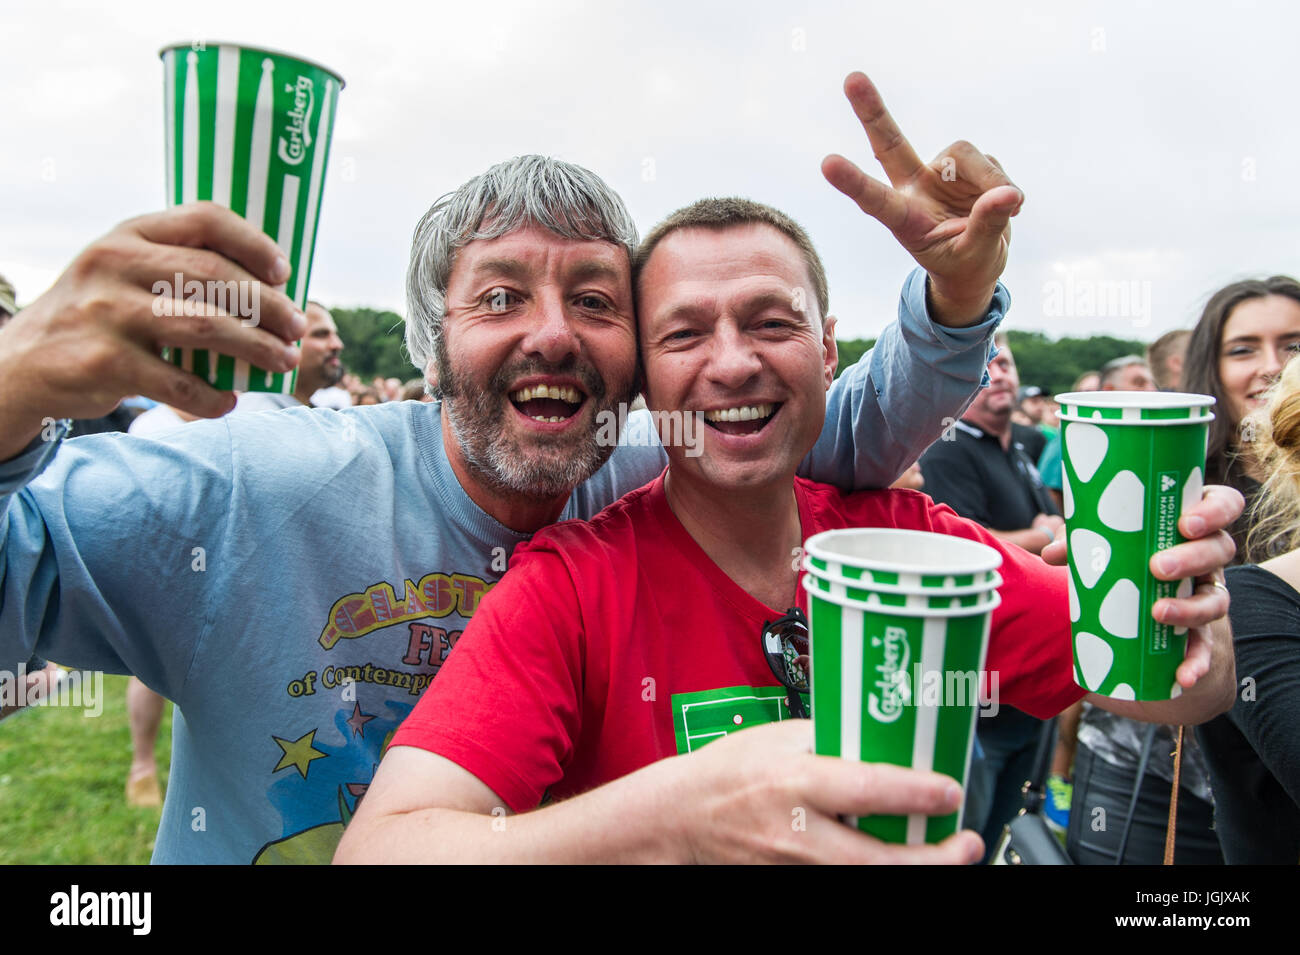 Coventry, UK. 7th July, 2017.  The annual Coventry Godiva Music Festival opened last night with huge crowds attending - Stock Image